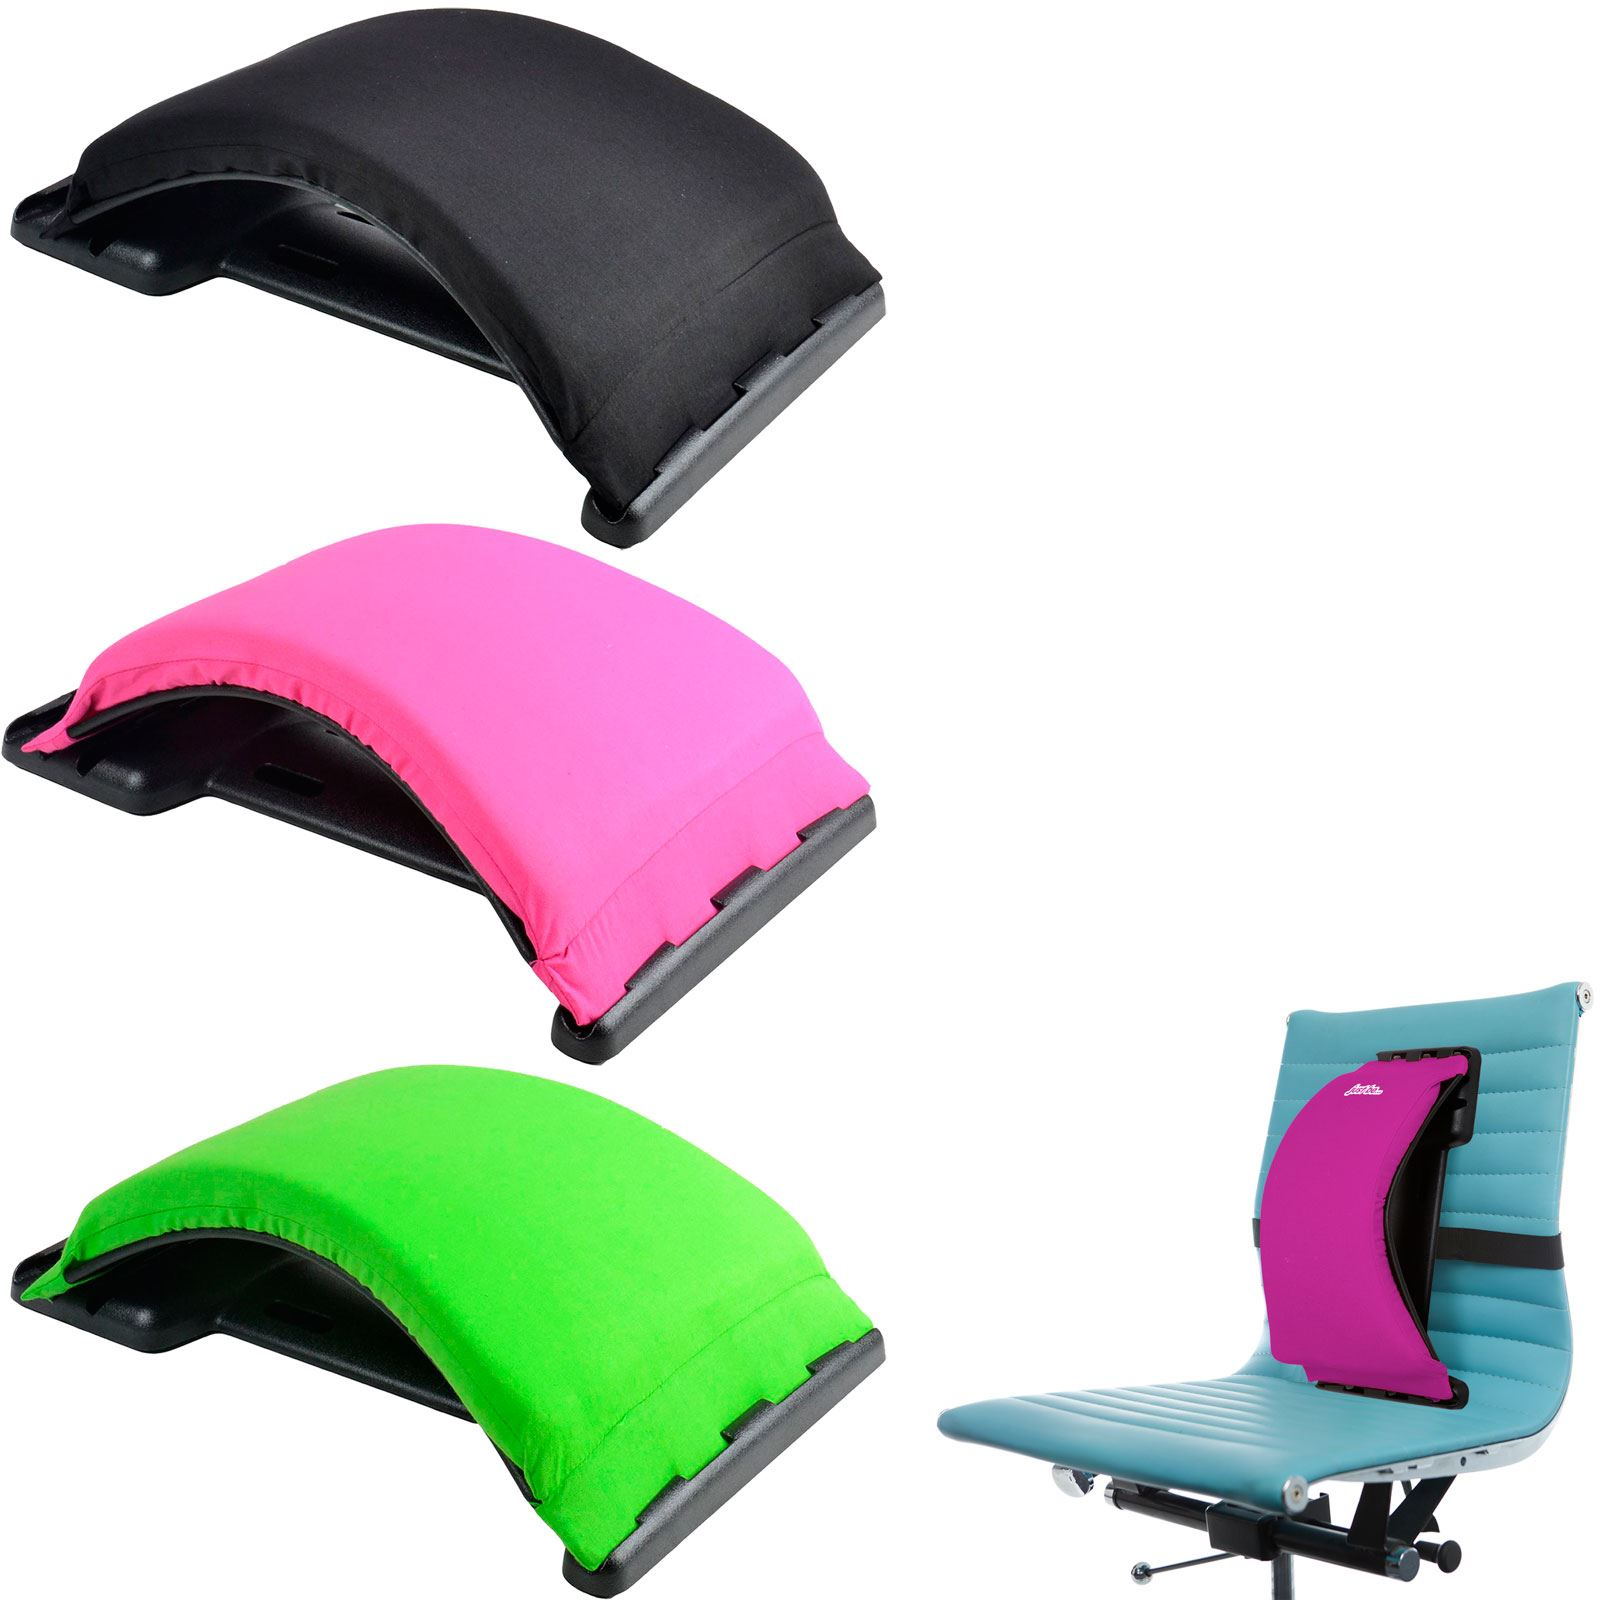 posture corrector for office chair swing tj maxx back magic support stretcher lower